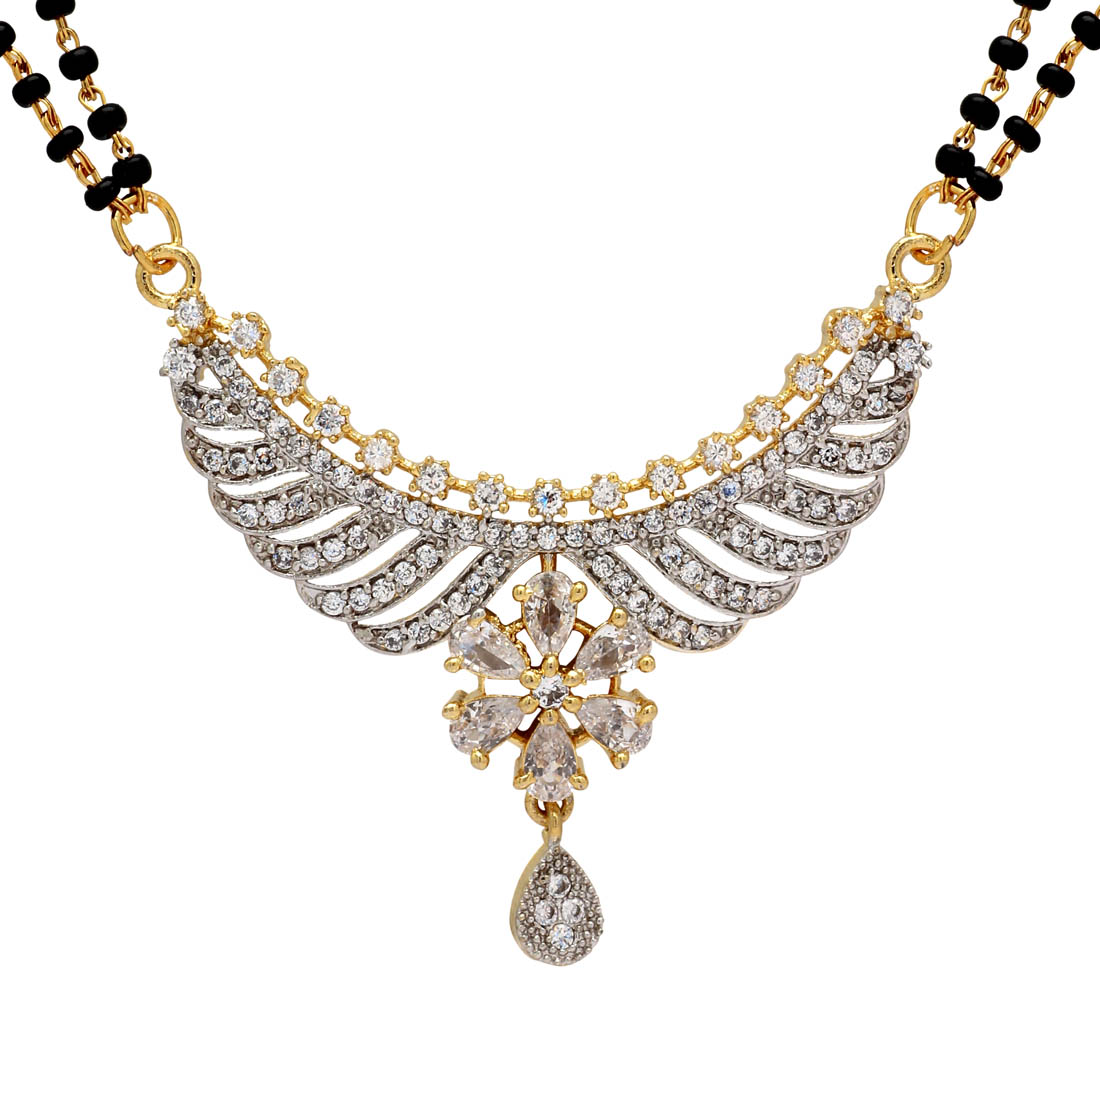 Special Offers - Shop Asian Fashion, Beauty & Lifestyle Online Freesia wholesale fashion jewelry